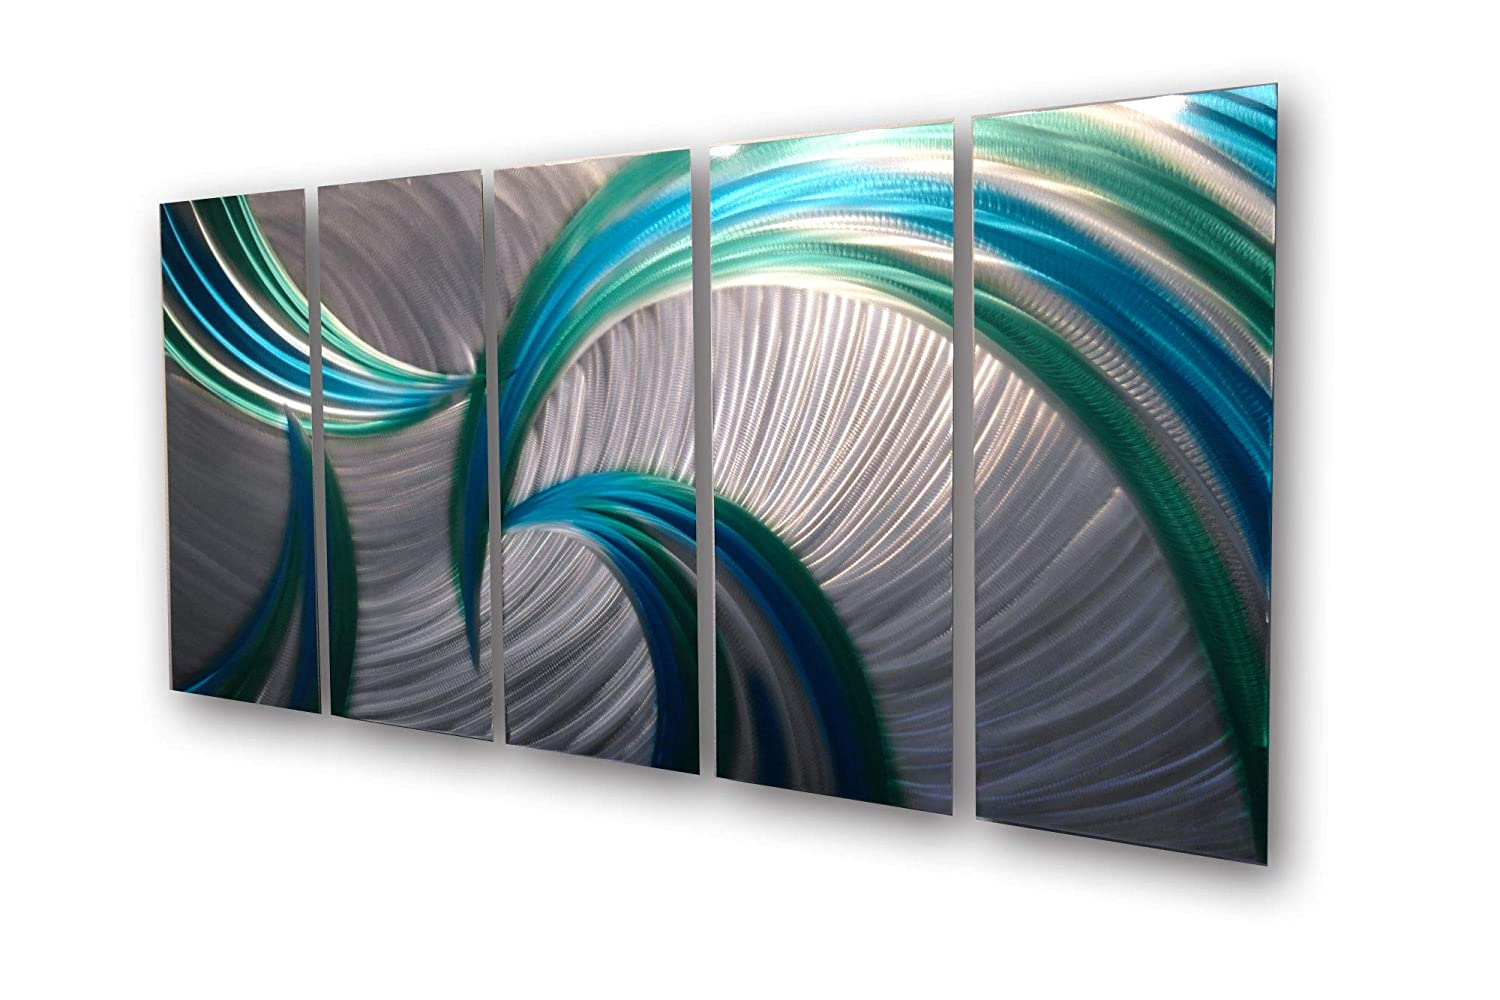 Amazon com miles shay metal wall art modern home decor abstract wall sculpture contemporary tempest 36 blue green posters prints